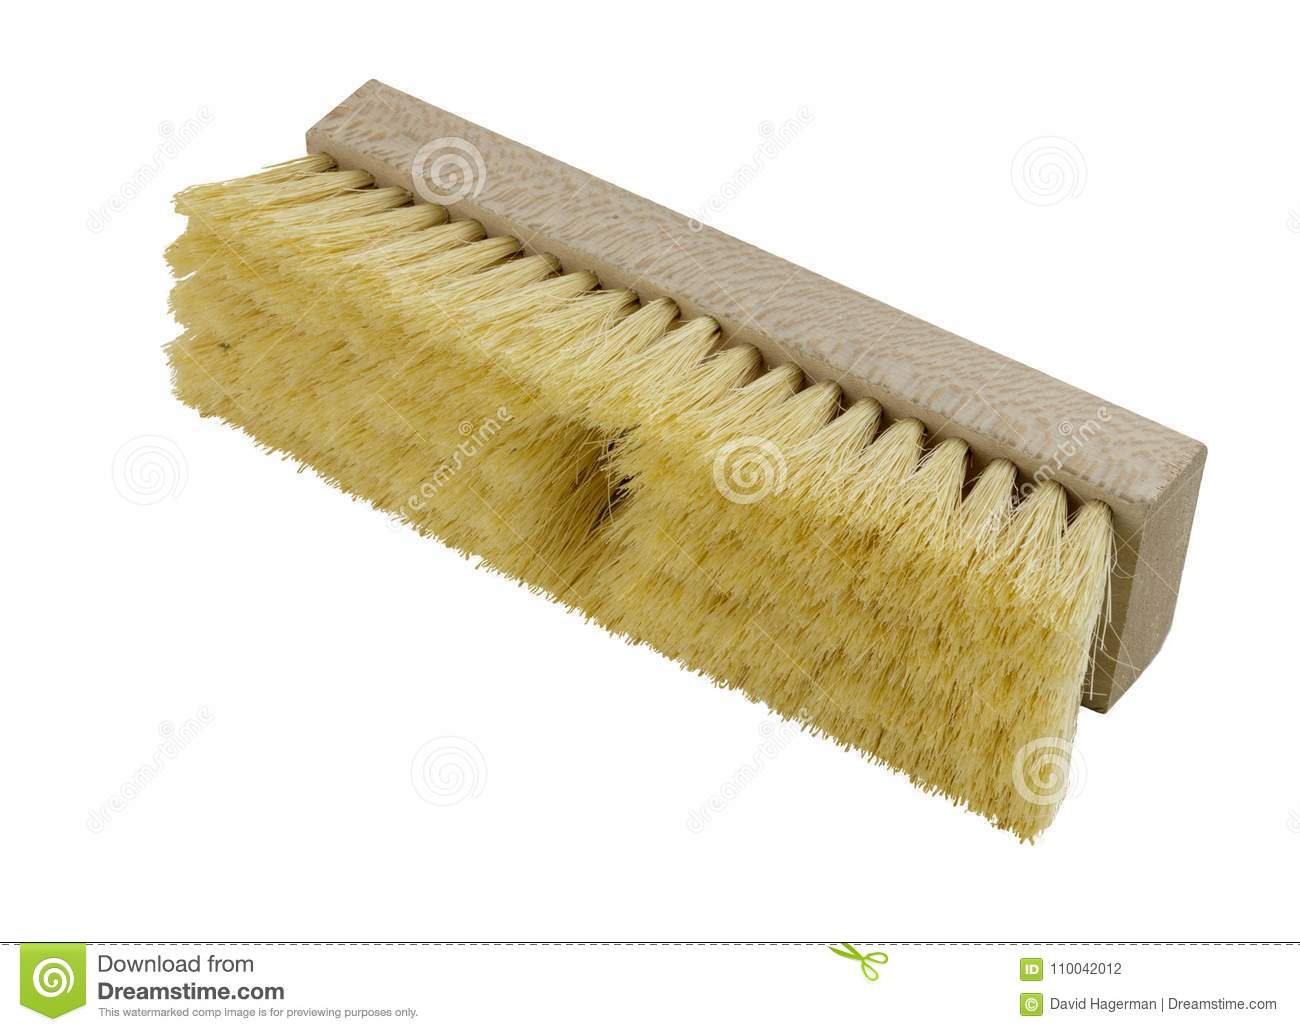 Wooden push broom head with yellow bristles